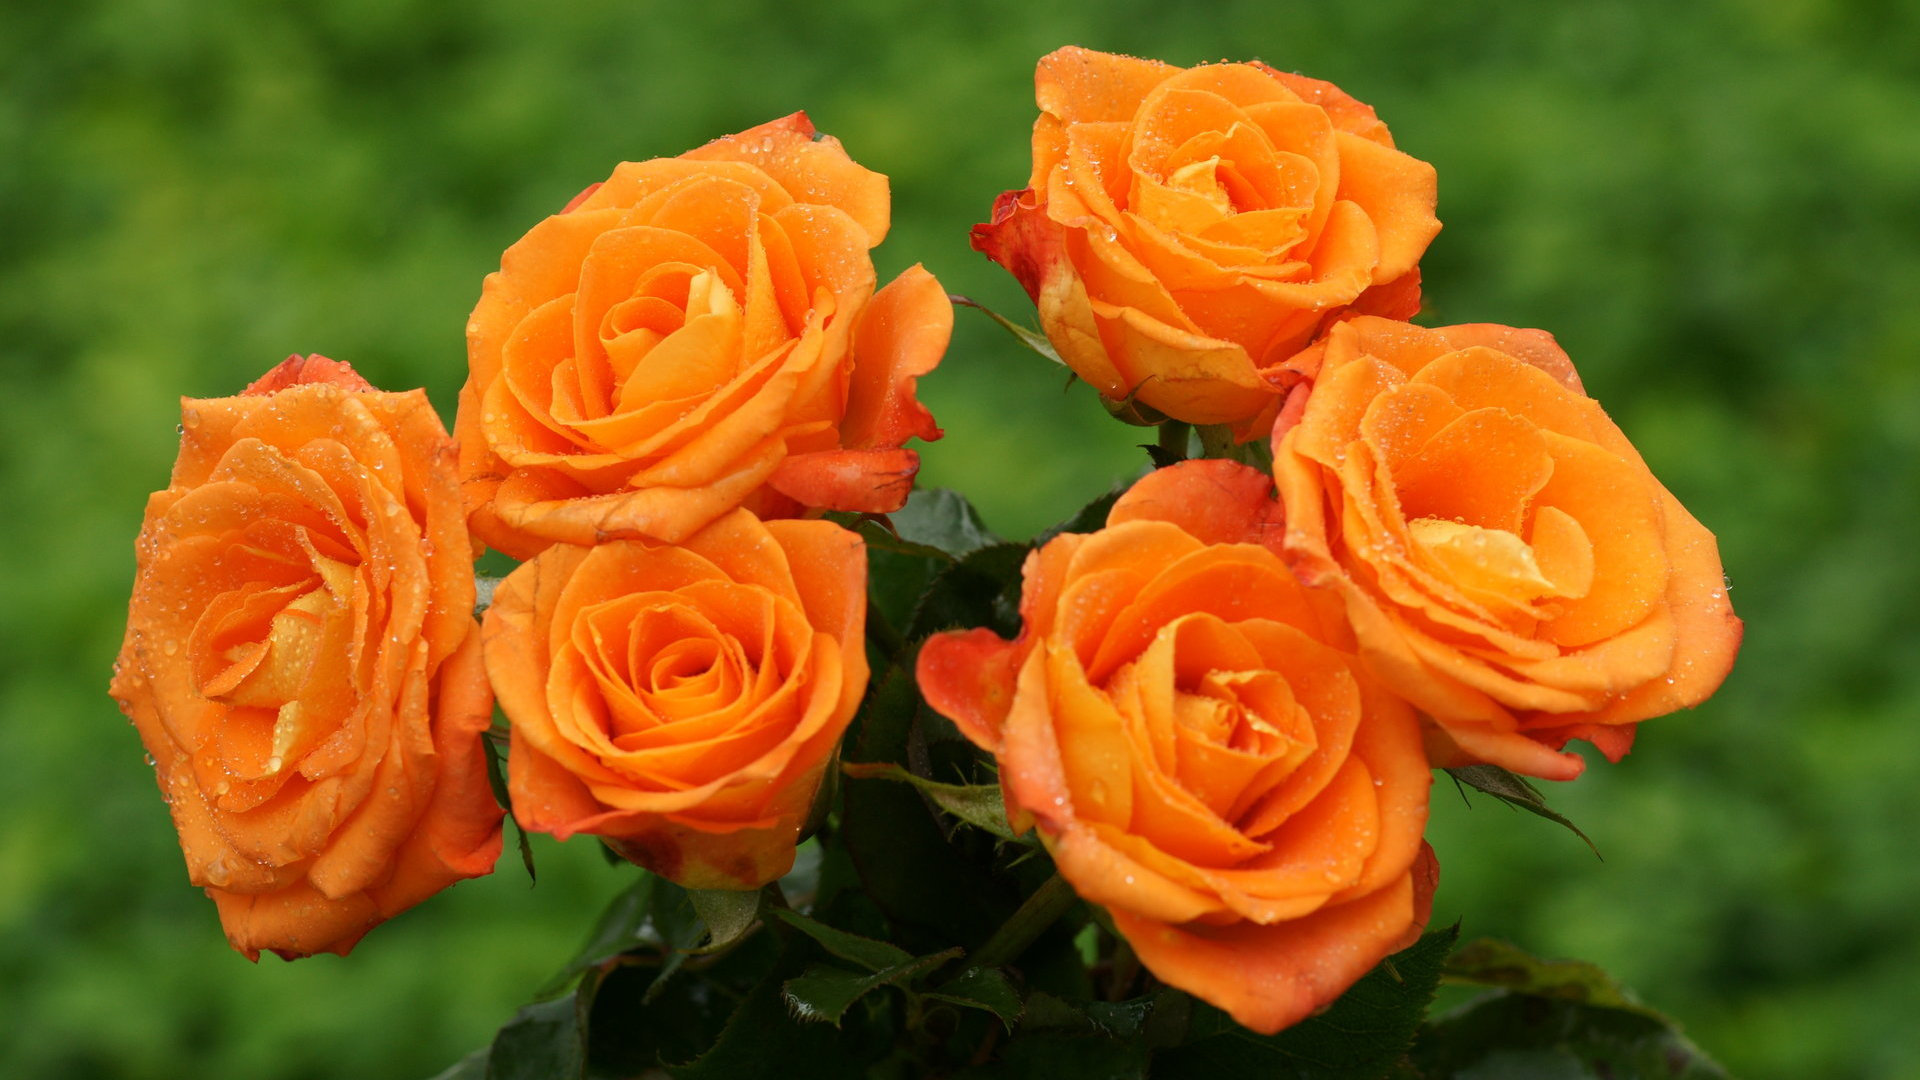 rose wallpaper hdtv 1920x1080 Orange ...